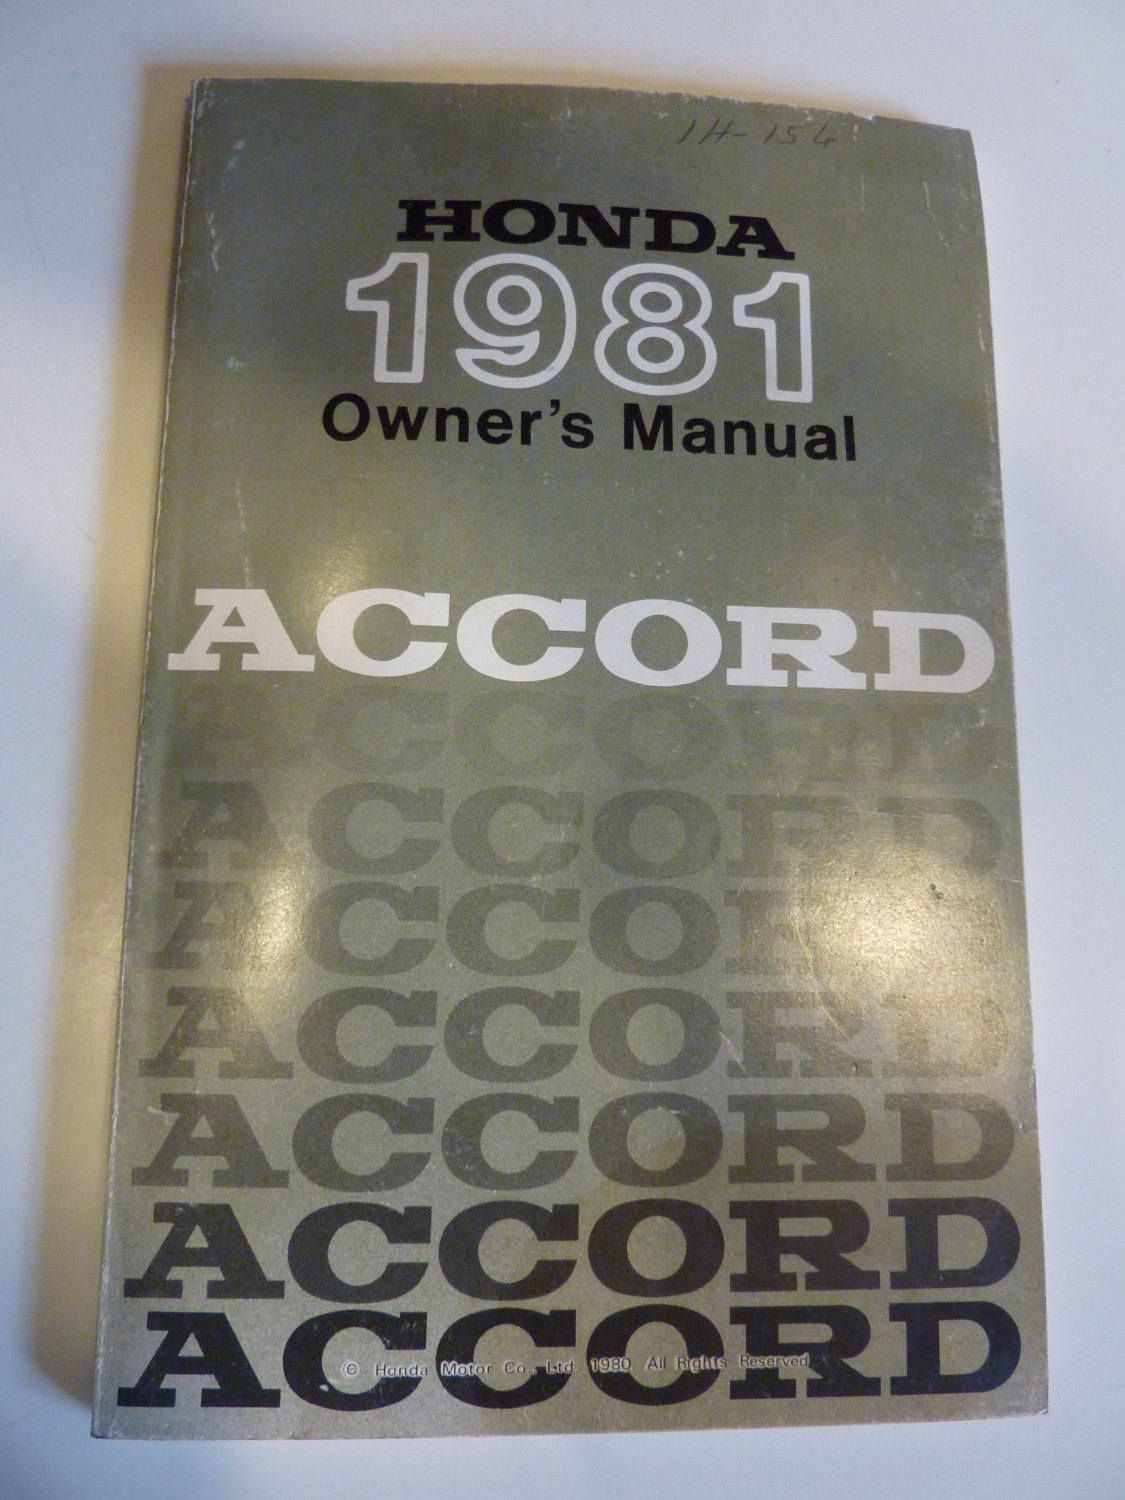 1981 Car Manual Honda Accord Auto Owner's Manual Book Car Maintenance Book  Honda Motor Company Honda